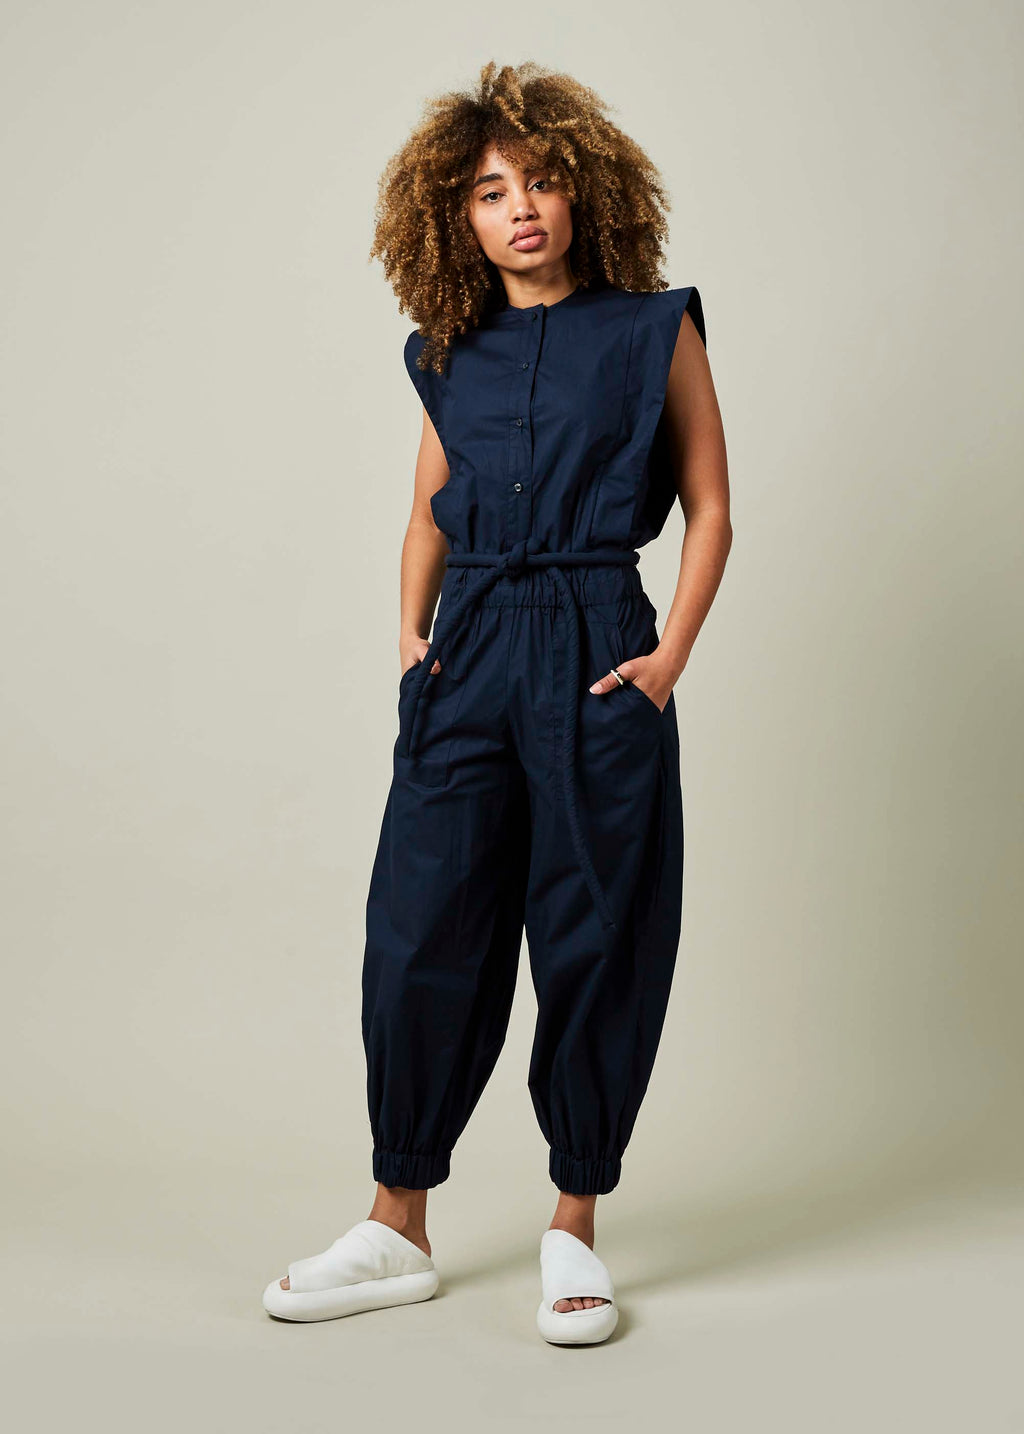 Nagore Sleeveless Jumpsuit